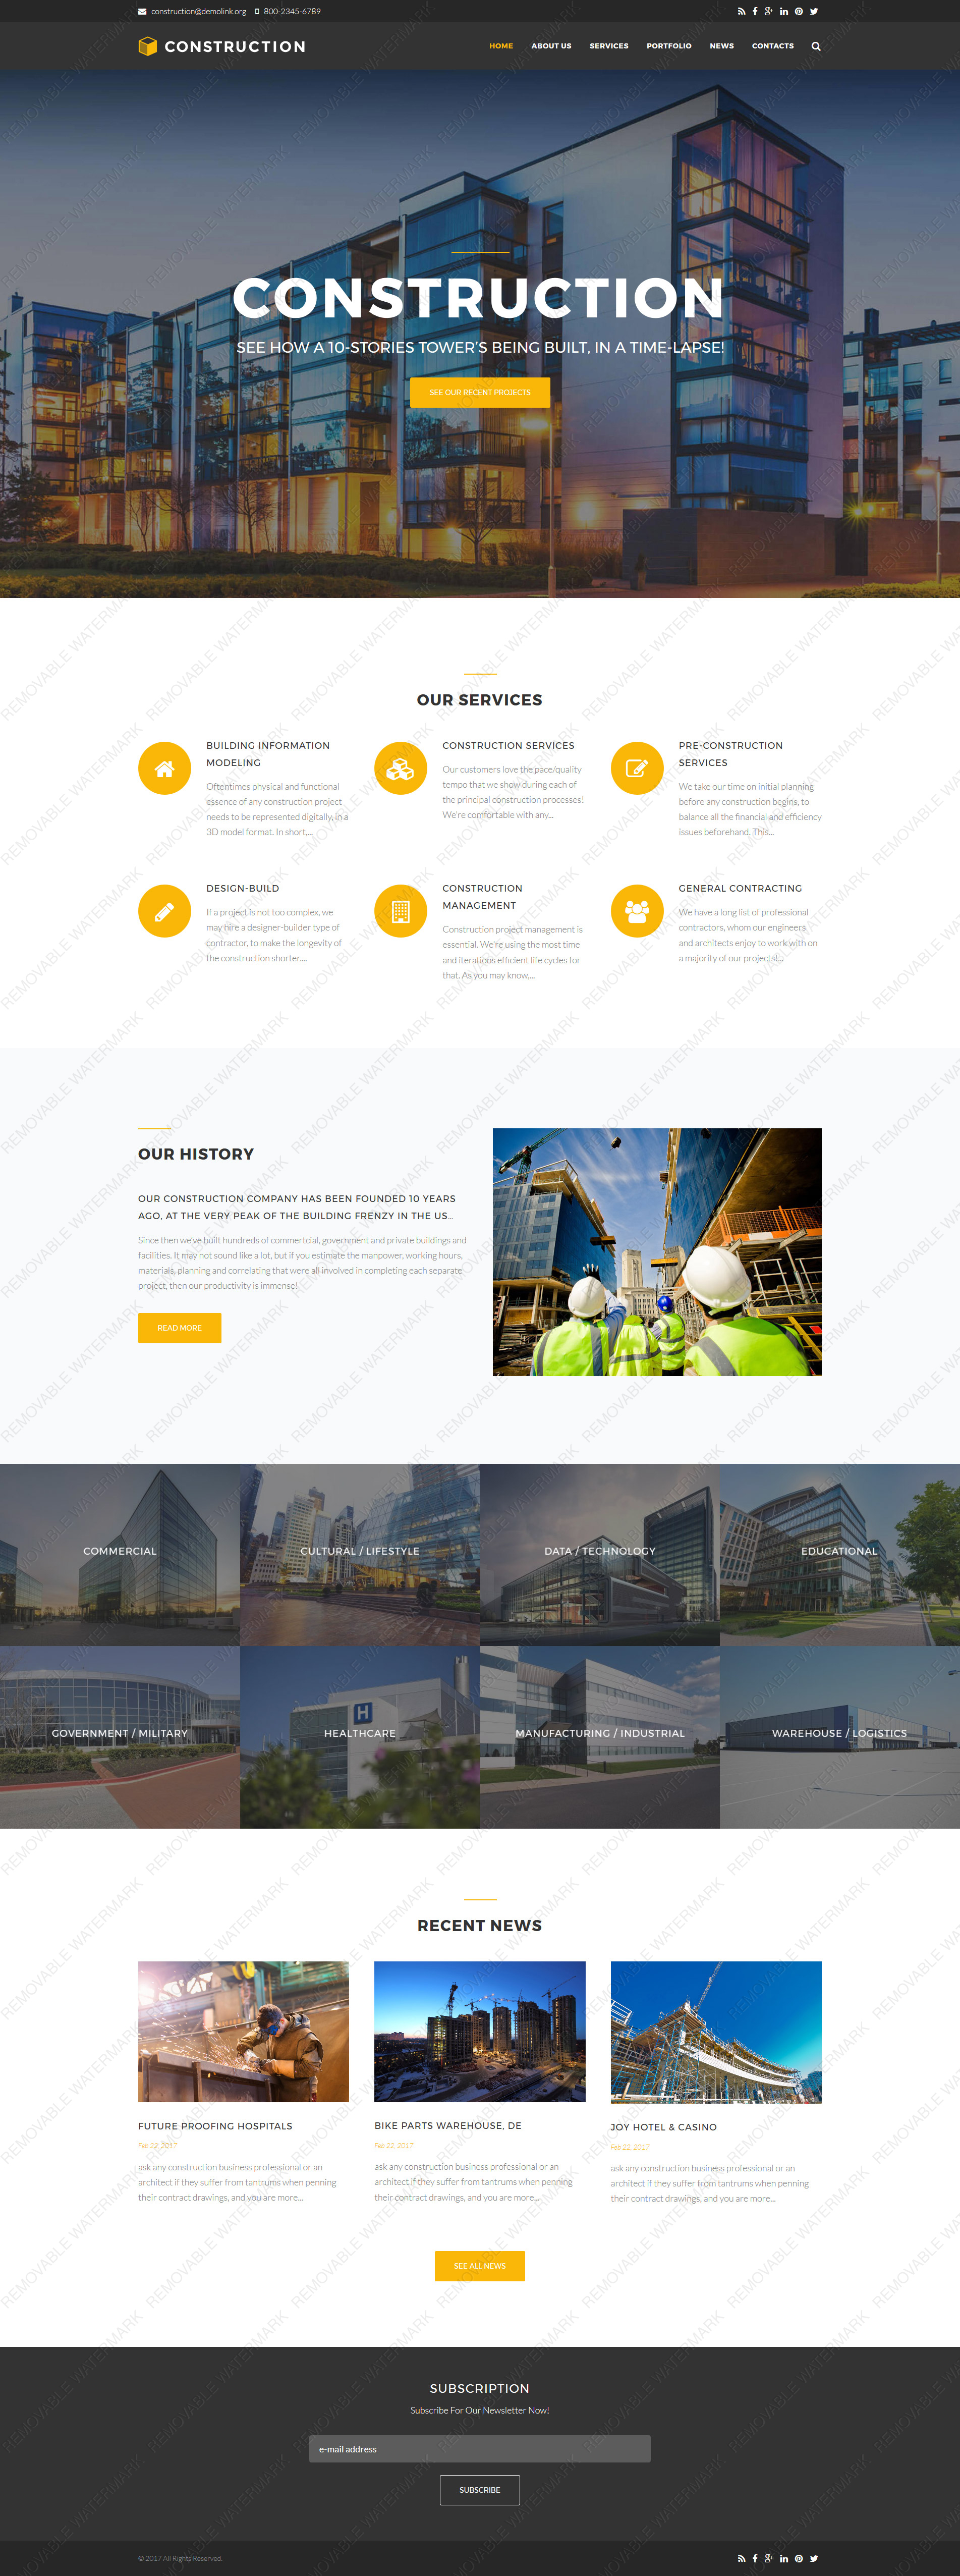 Custom Website Design Template #62481 -  construction house repair renovation roofing electrician